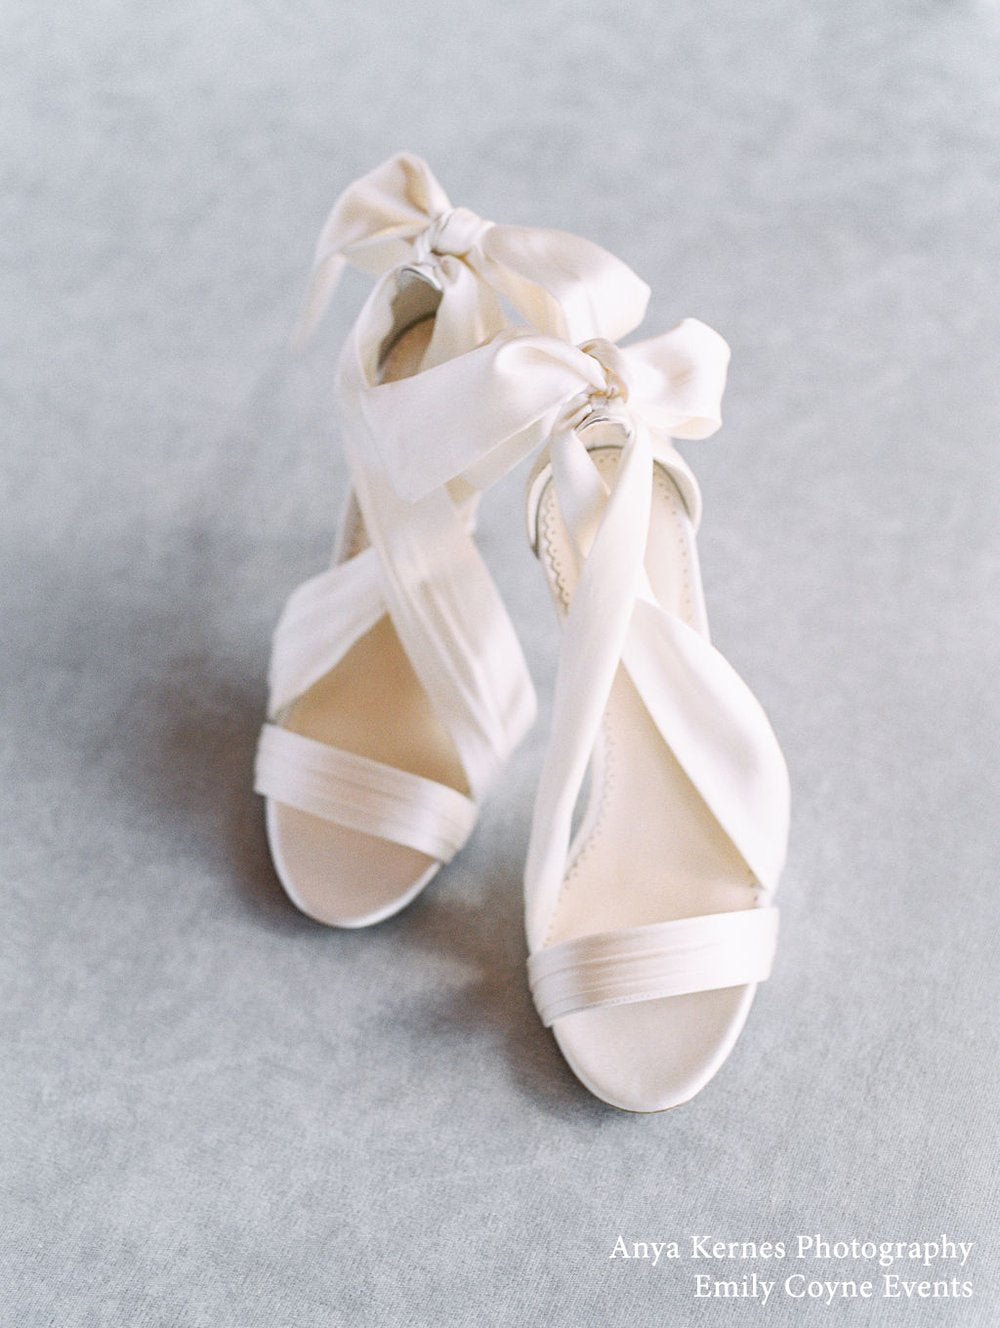 bella belle kate ivory silk ribbon wedding shoes